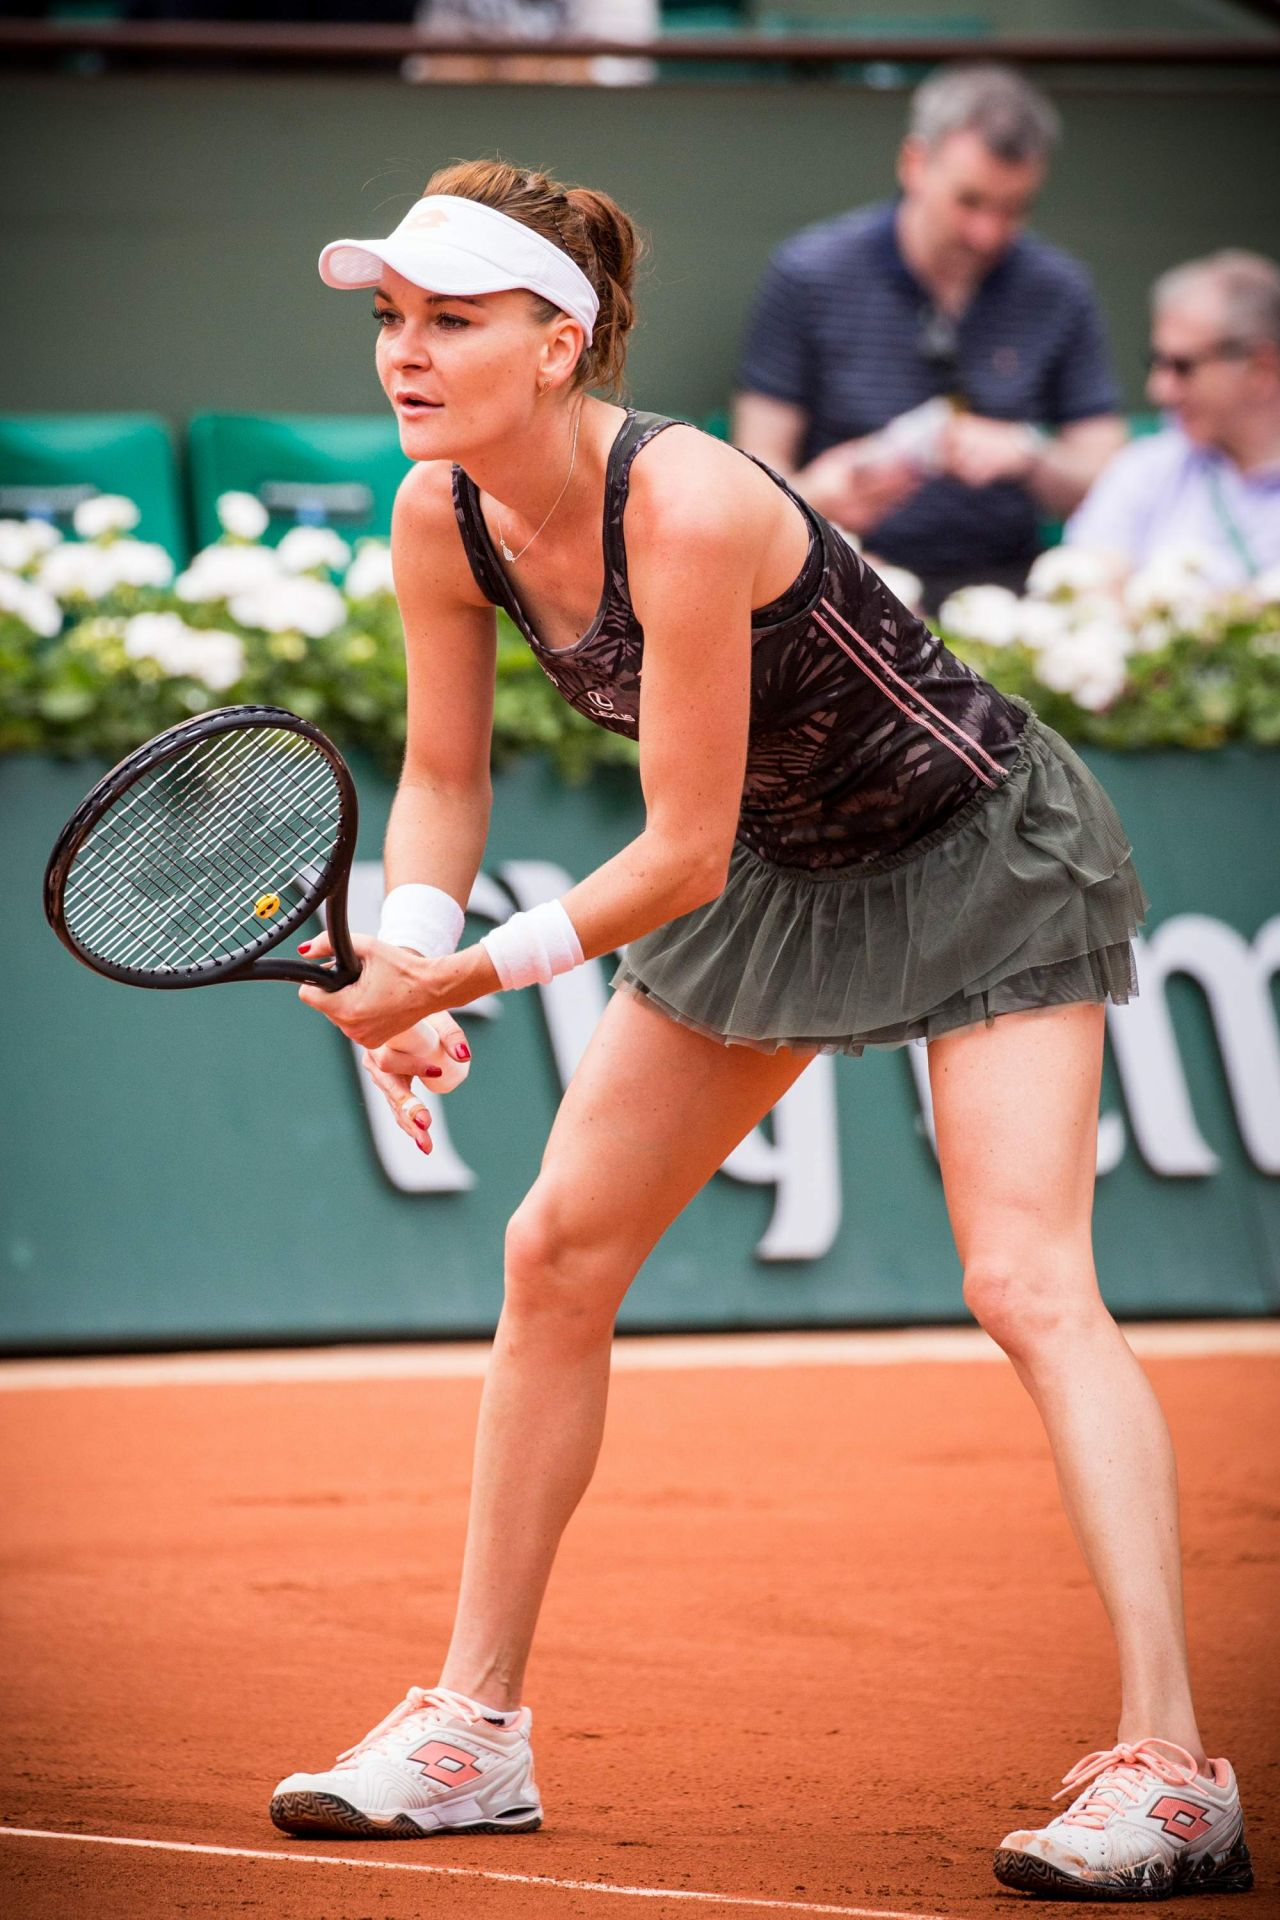 Agnieszka Radwanska – French Open Tennis Tournament in Roland Garros, Paris 06/03/2017